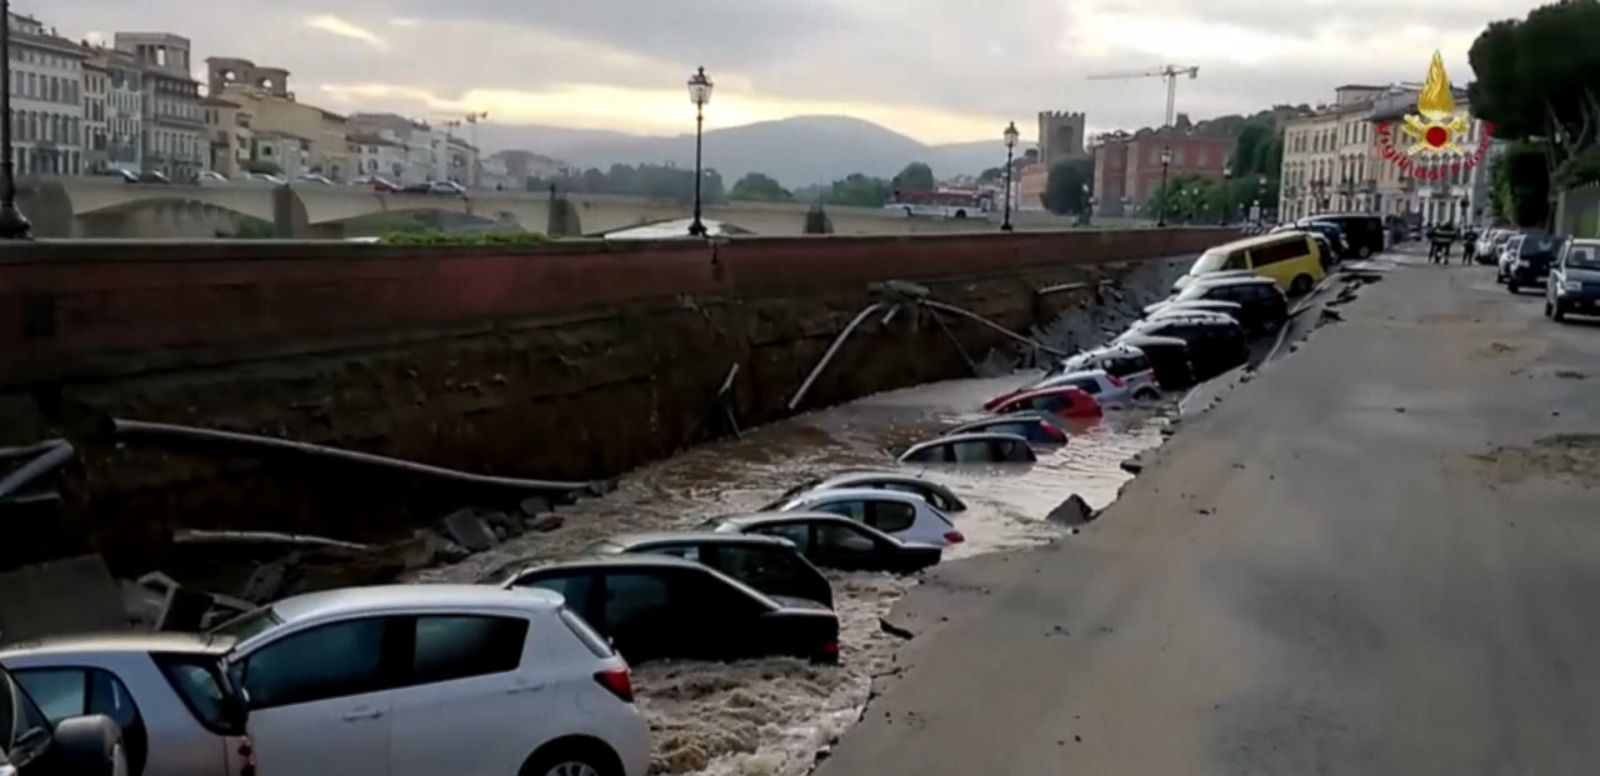 VIDEO: A section of road collapsed and filled with water beside the Arno River in Florence.